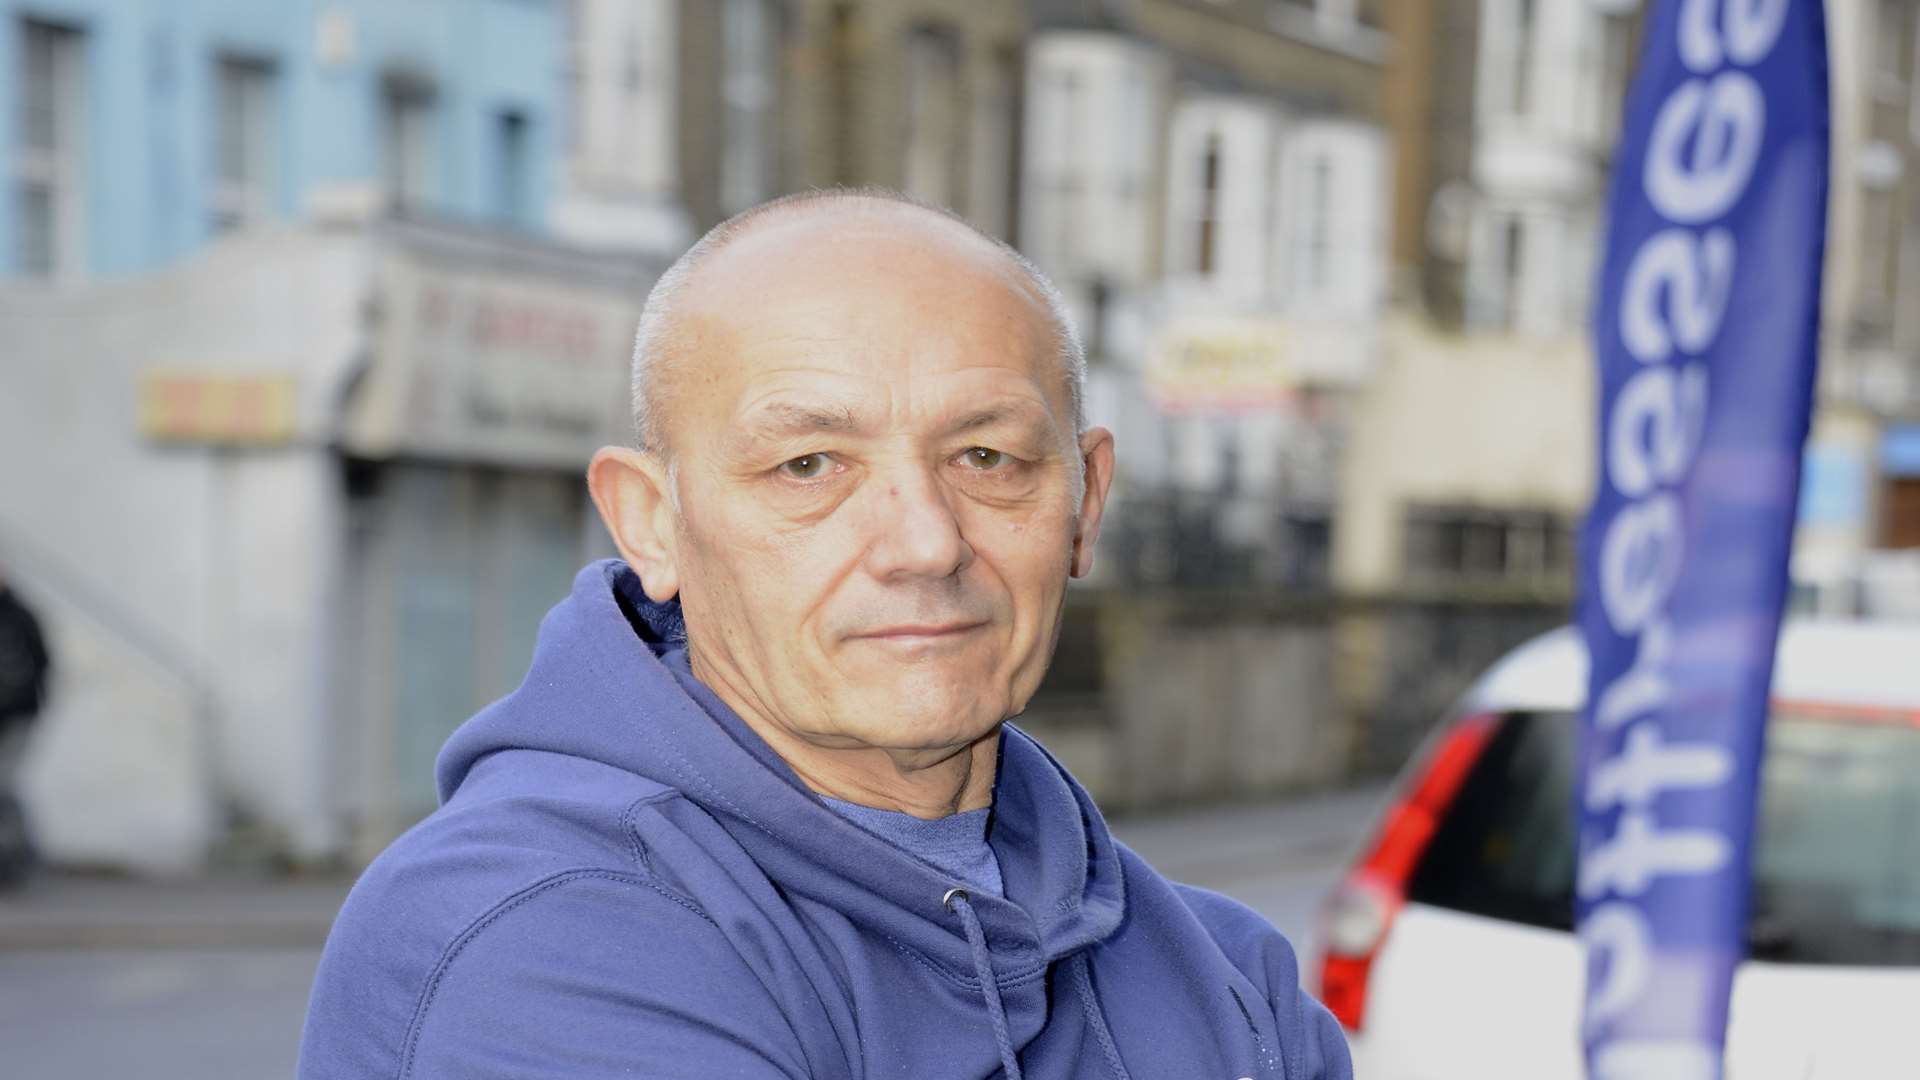 Paul Pearson - says drivers of foreign-registered cars can more easily avoid parking fines